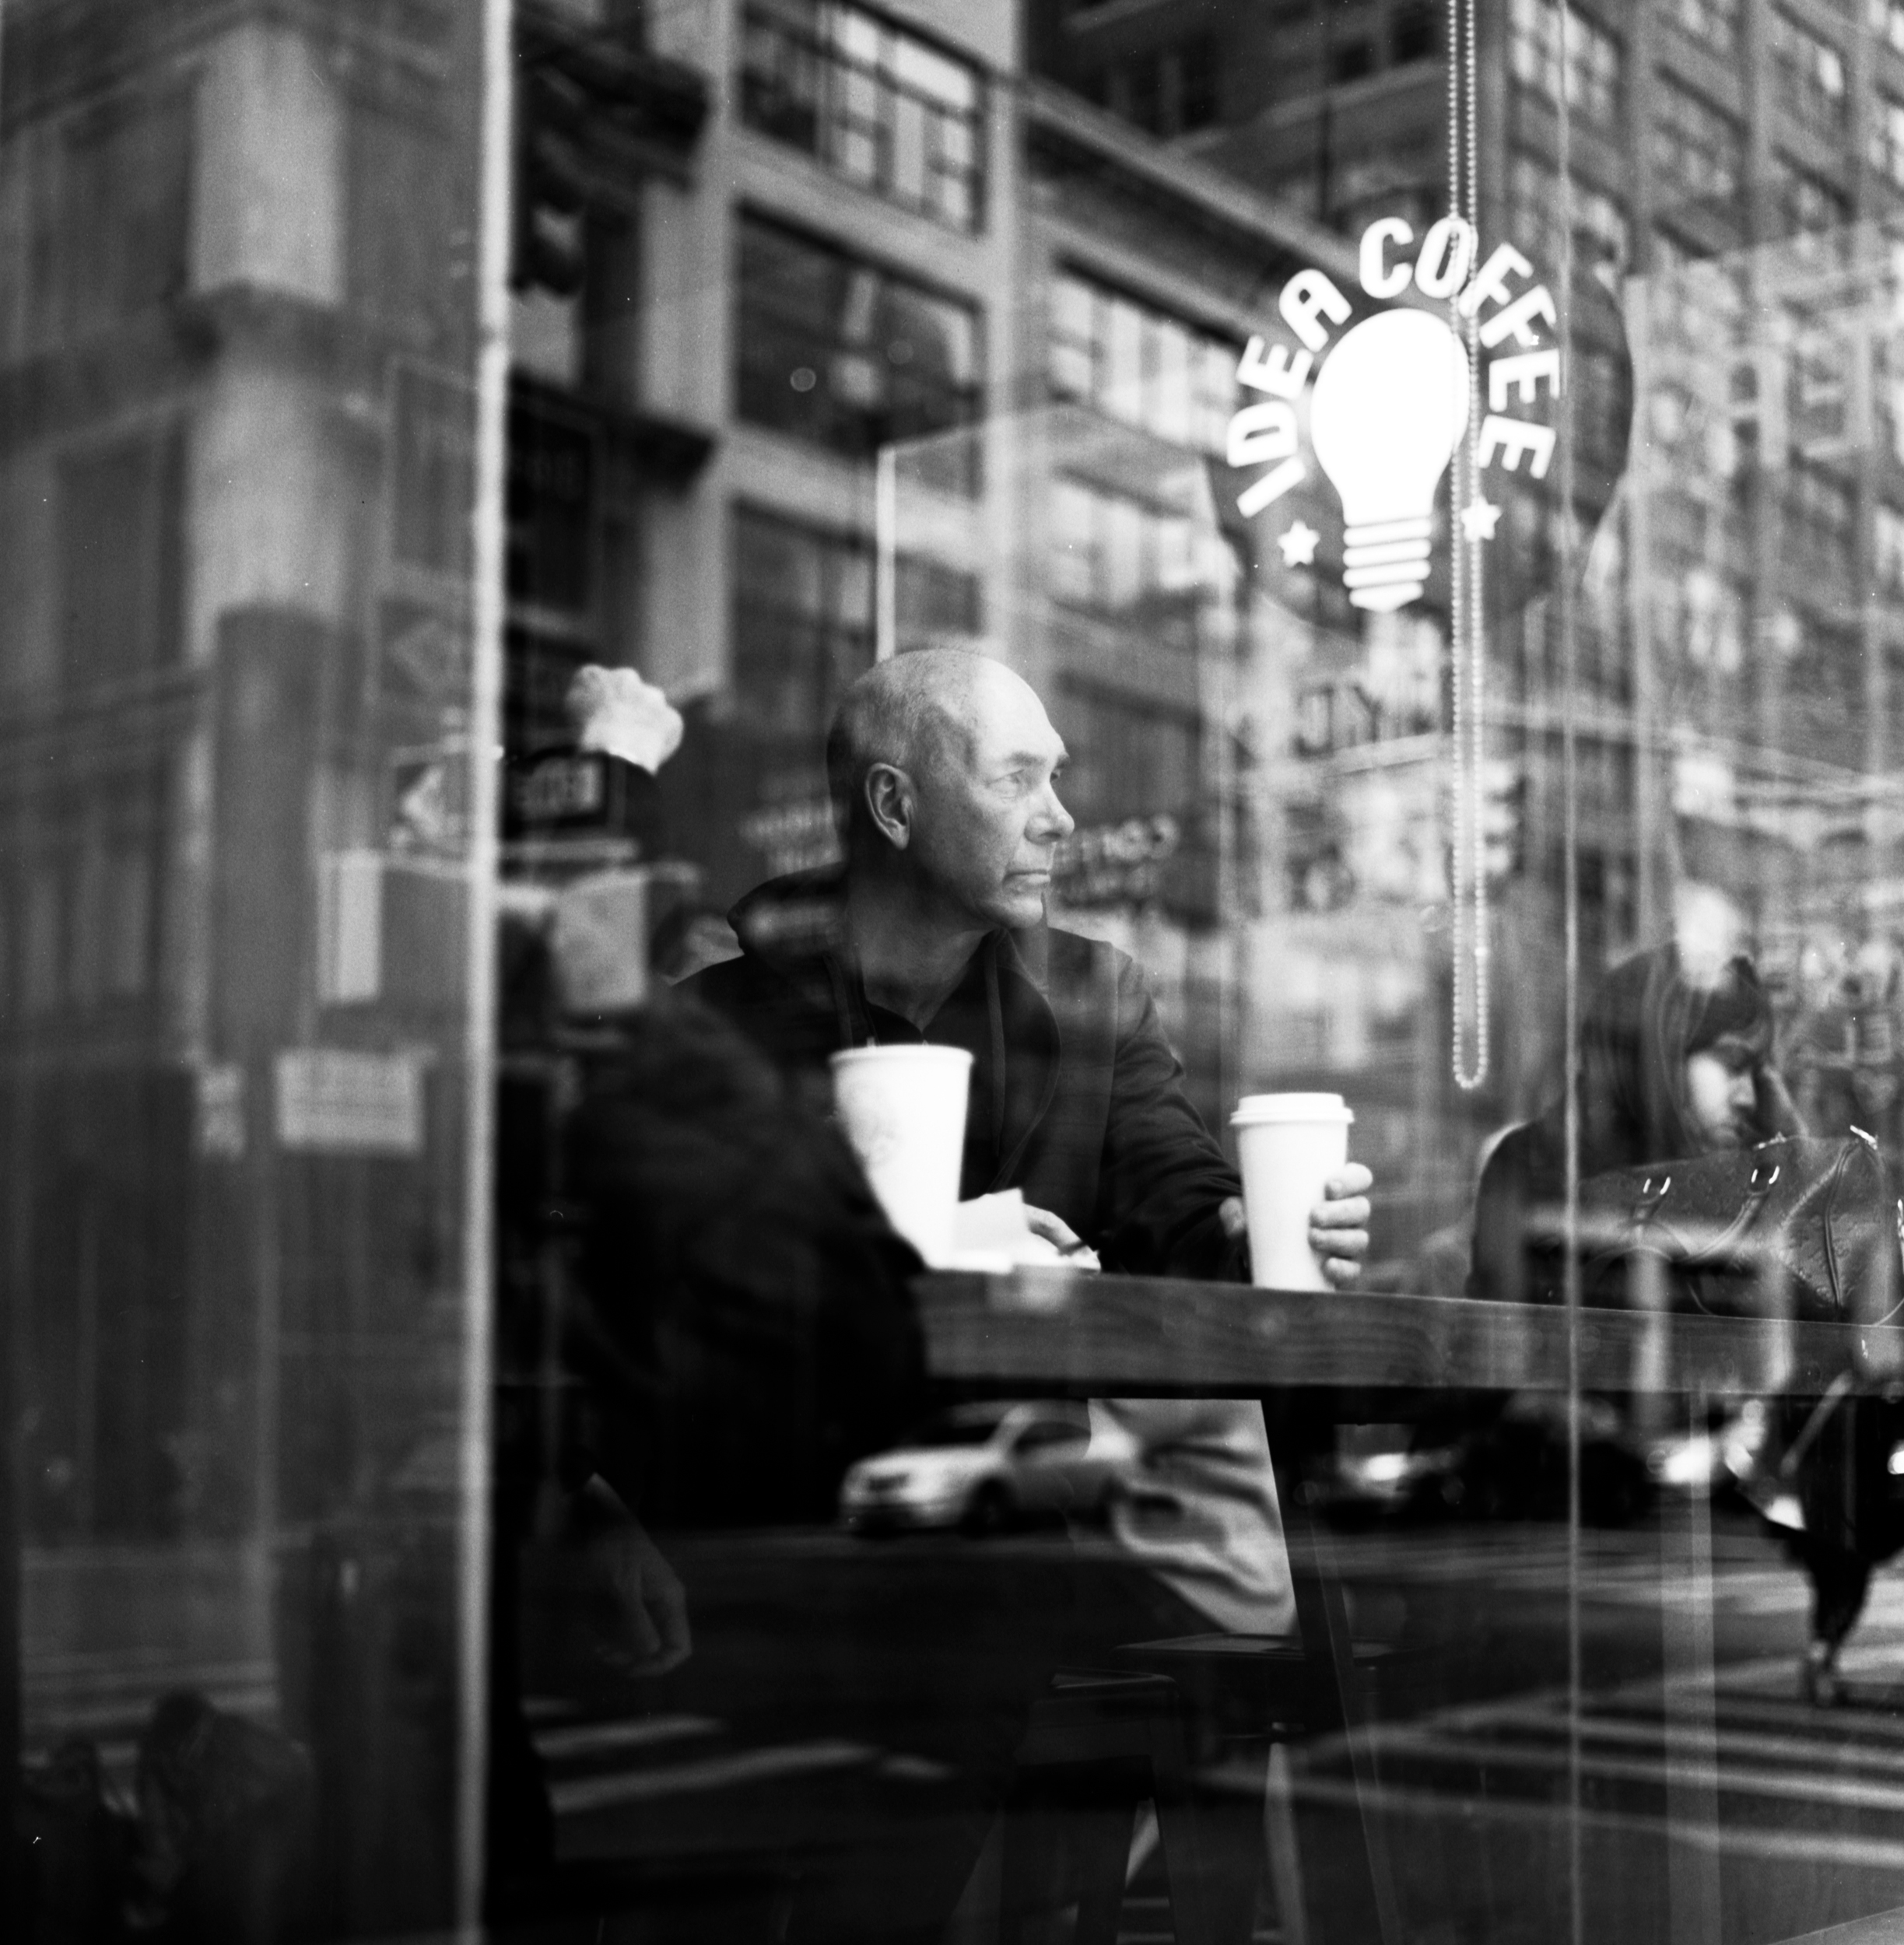 michelle viljoen, street photography, new york city, photography, new york city, 120mm film, hasselblad 500, man sitting in coffee shop in new york city, reflection photography